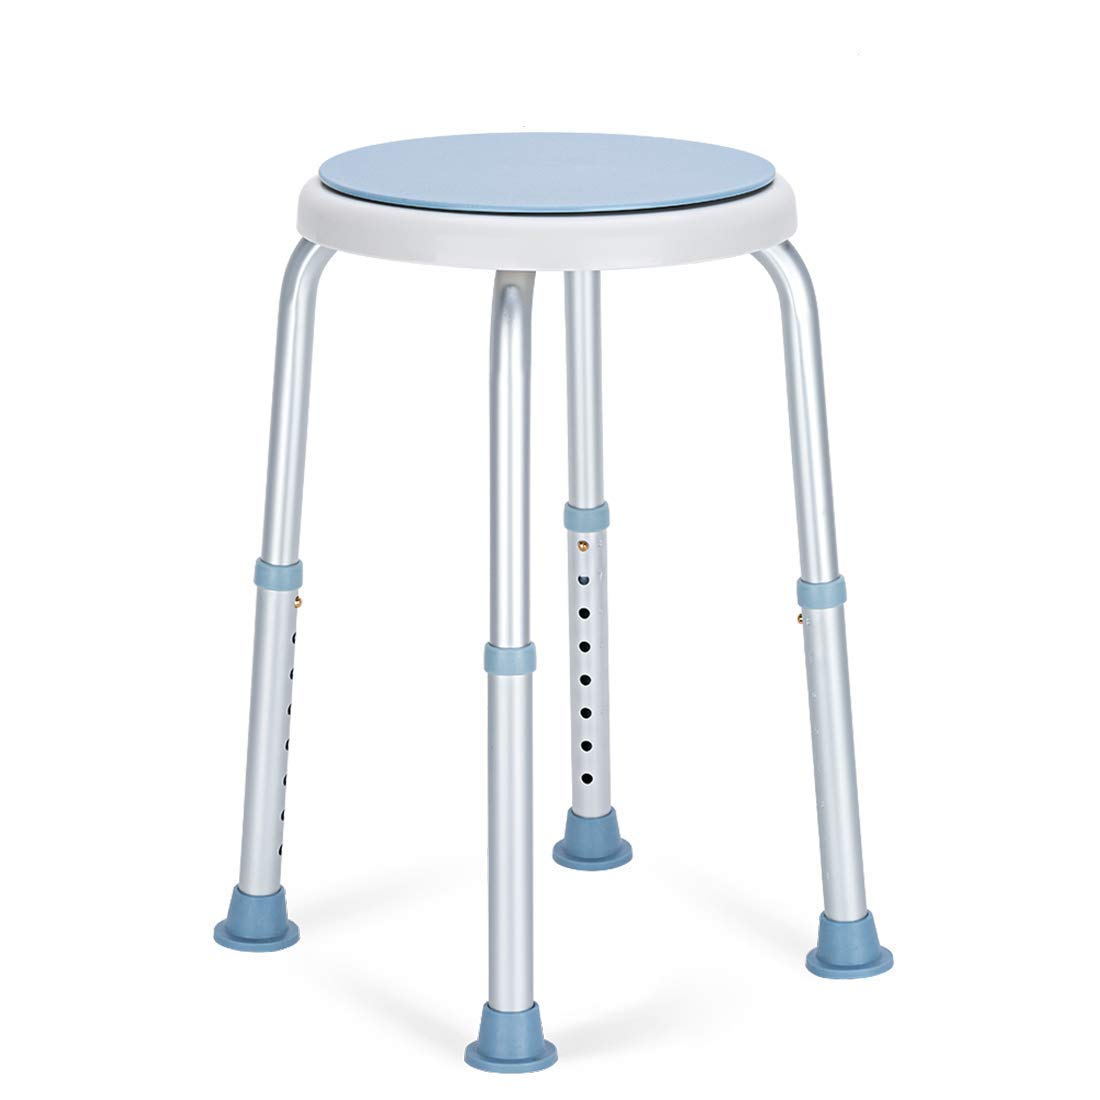 Amazon.com: OasisSpace 360 Degree Rotating Shower Chair, Tool Free ...